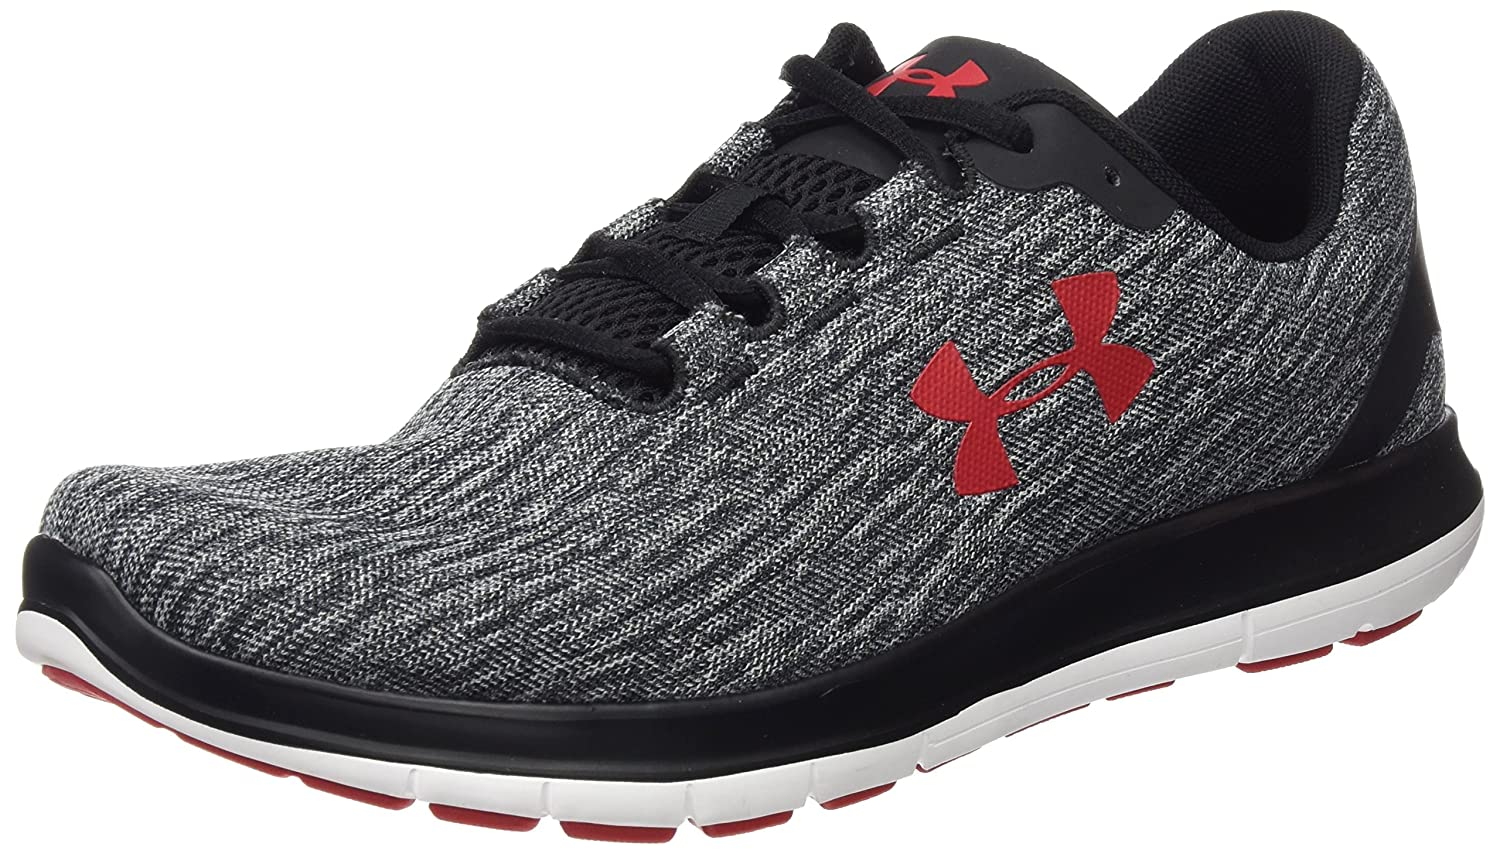 Under Armour Remix Running Shoes - SS18 B071HLSH9V 7.5 D(M) US|Grey